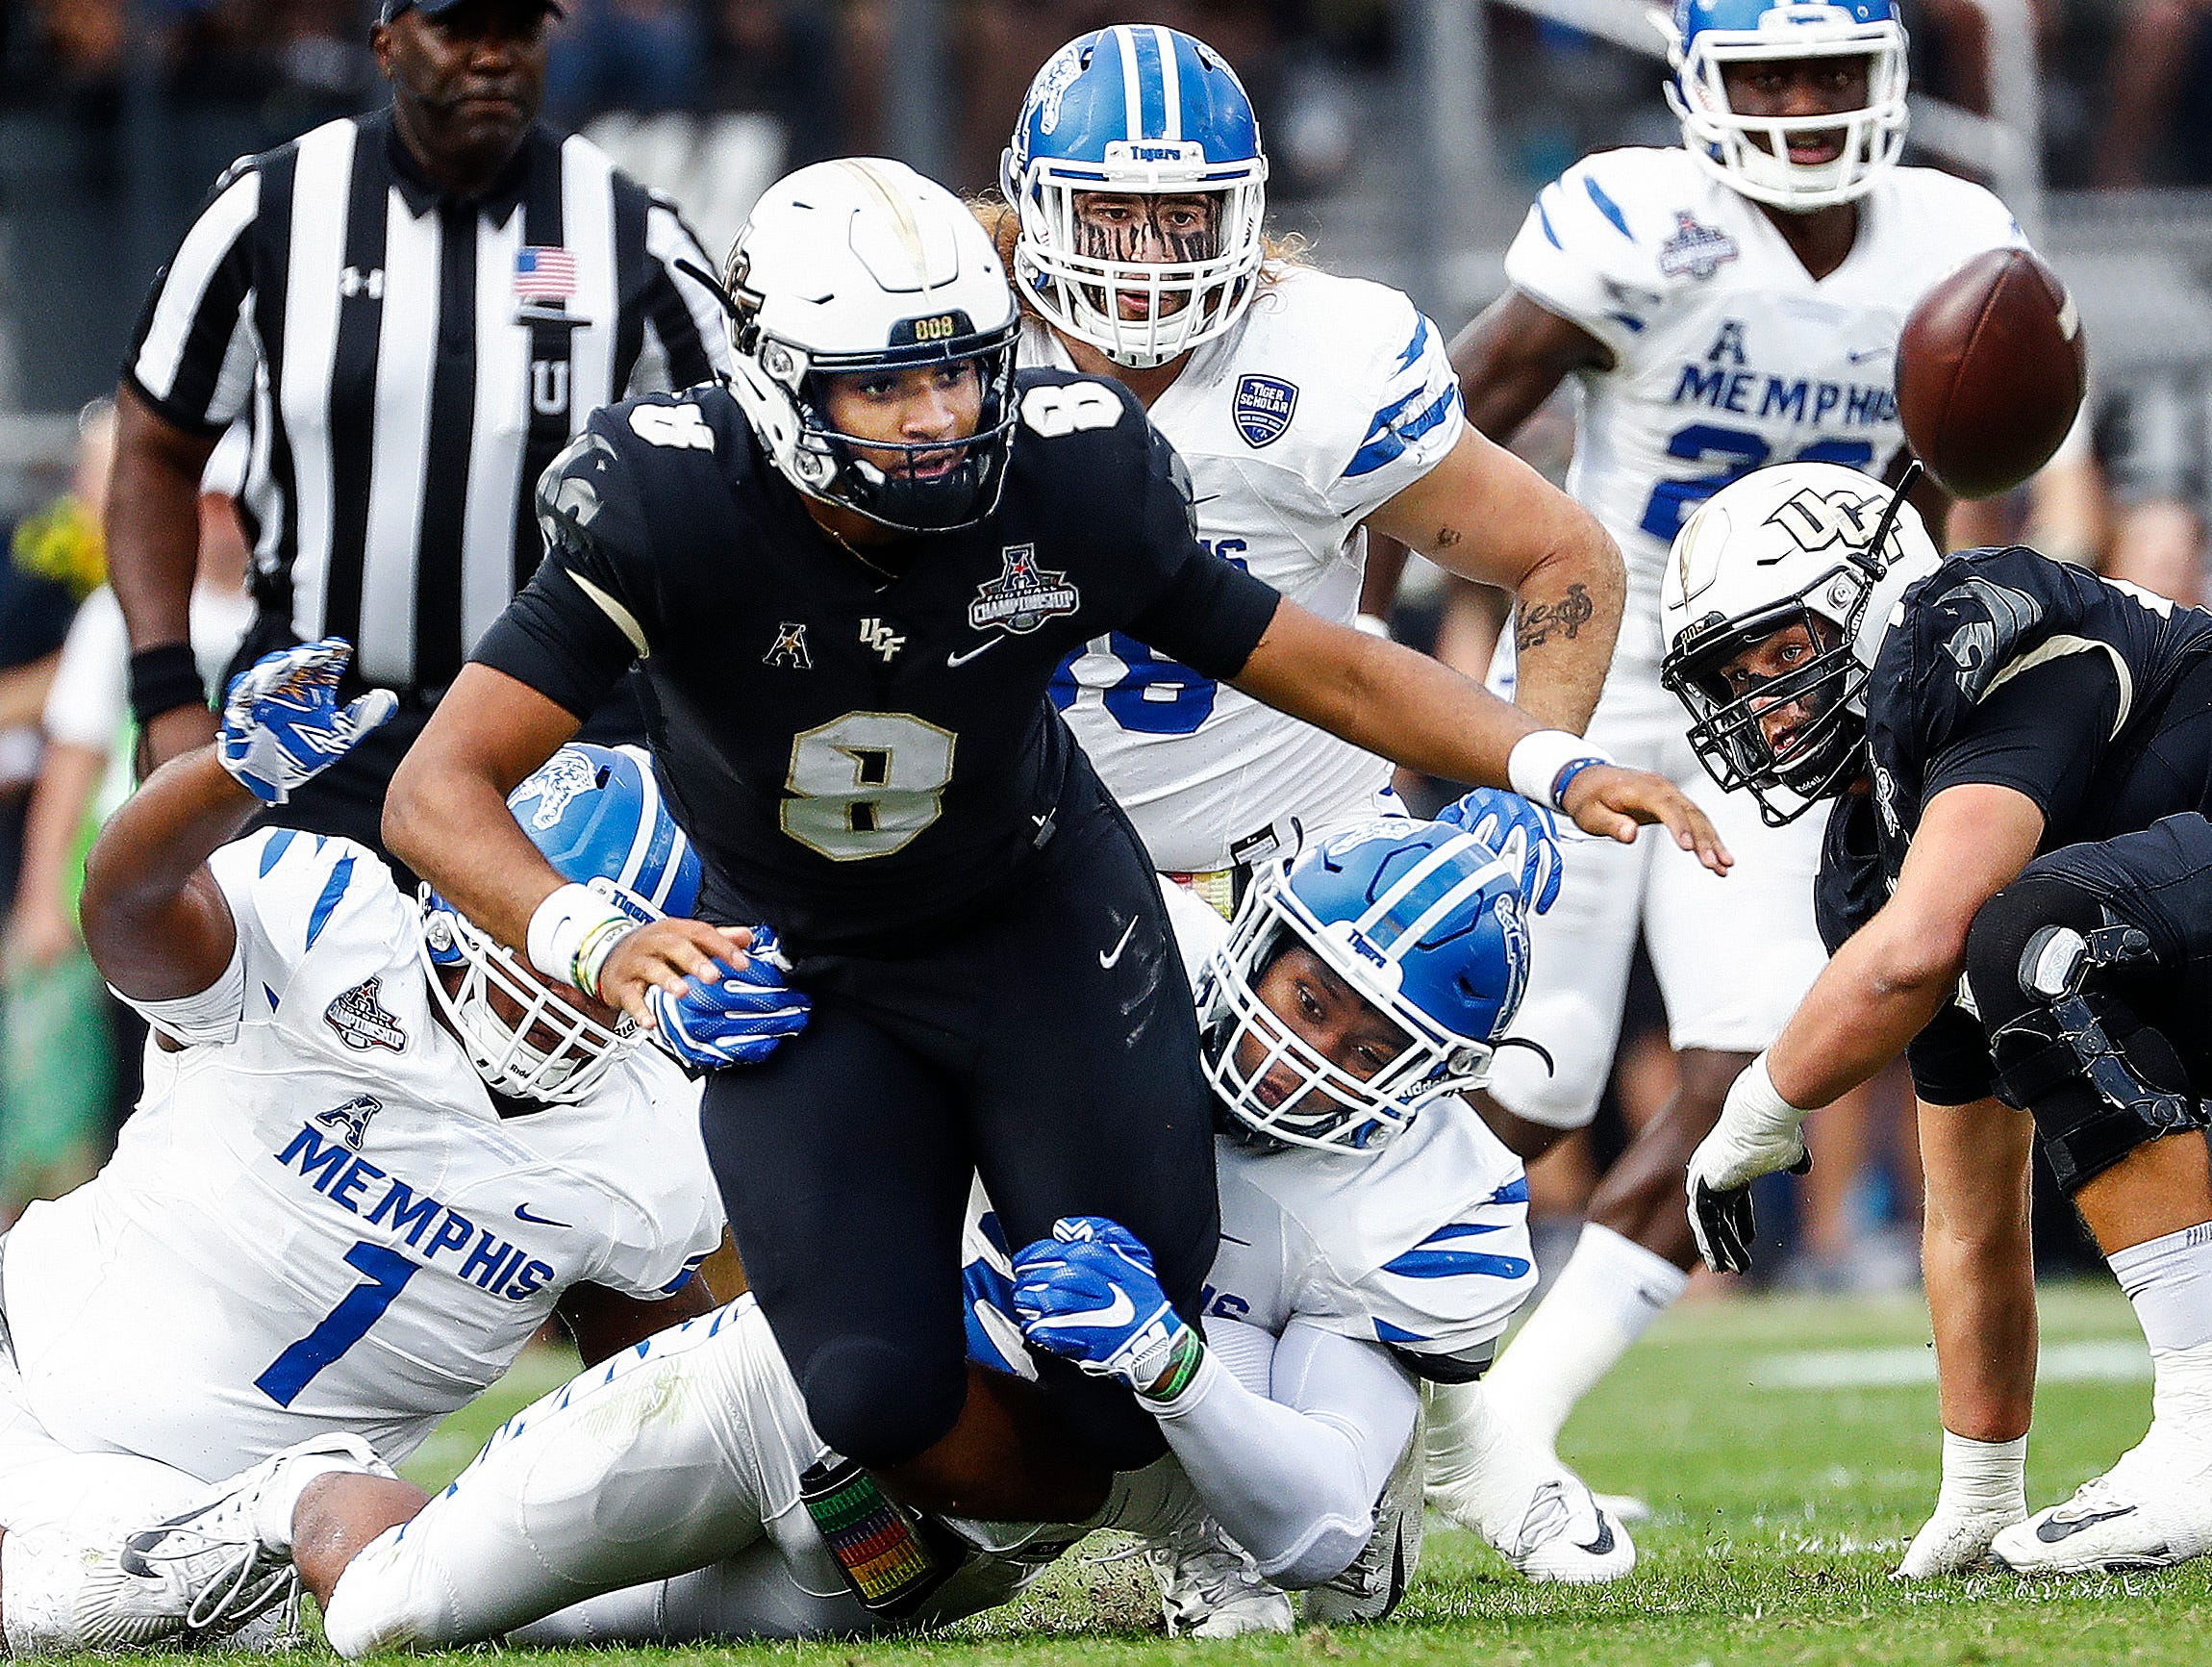 The Memphis defense causes UCF quarterback Darriel Mack Jr. (middle) to fumble during action at the AAC Championship Football game Saturday, December 1, 2018 in Orlando. Memphis recovered the ball on the play.